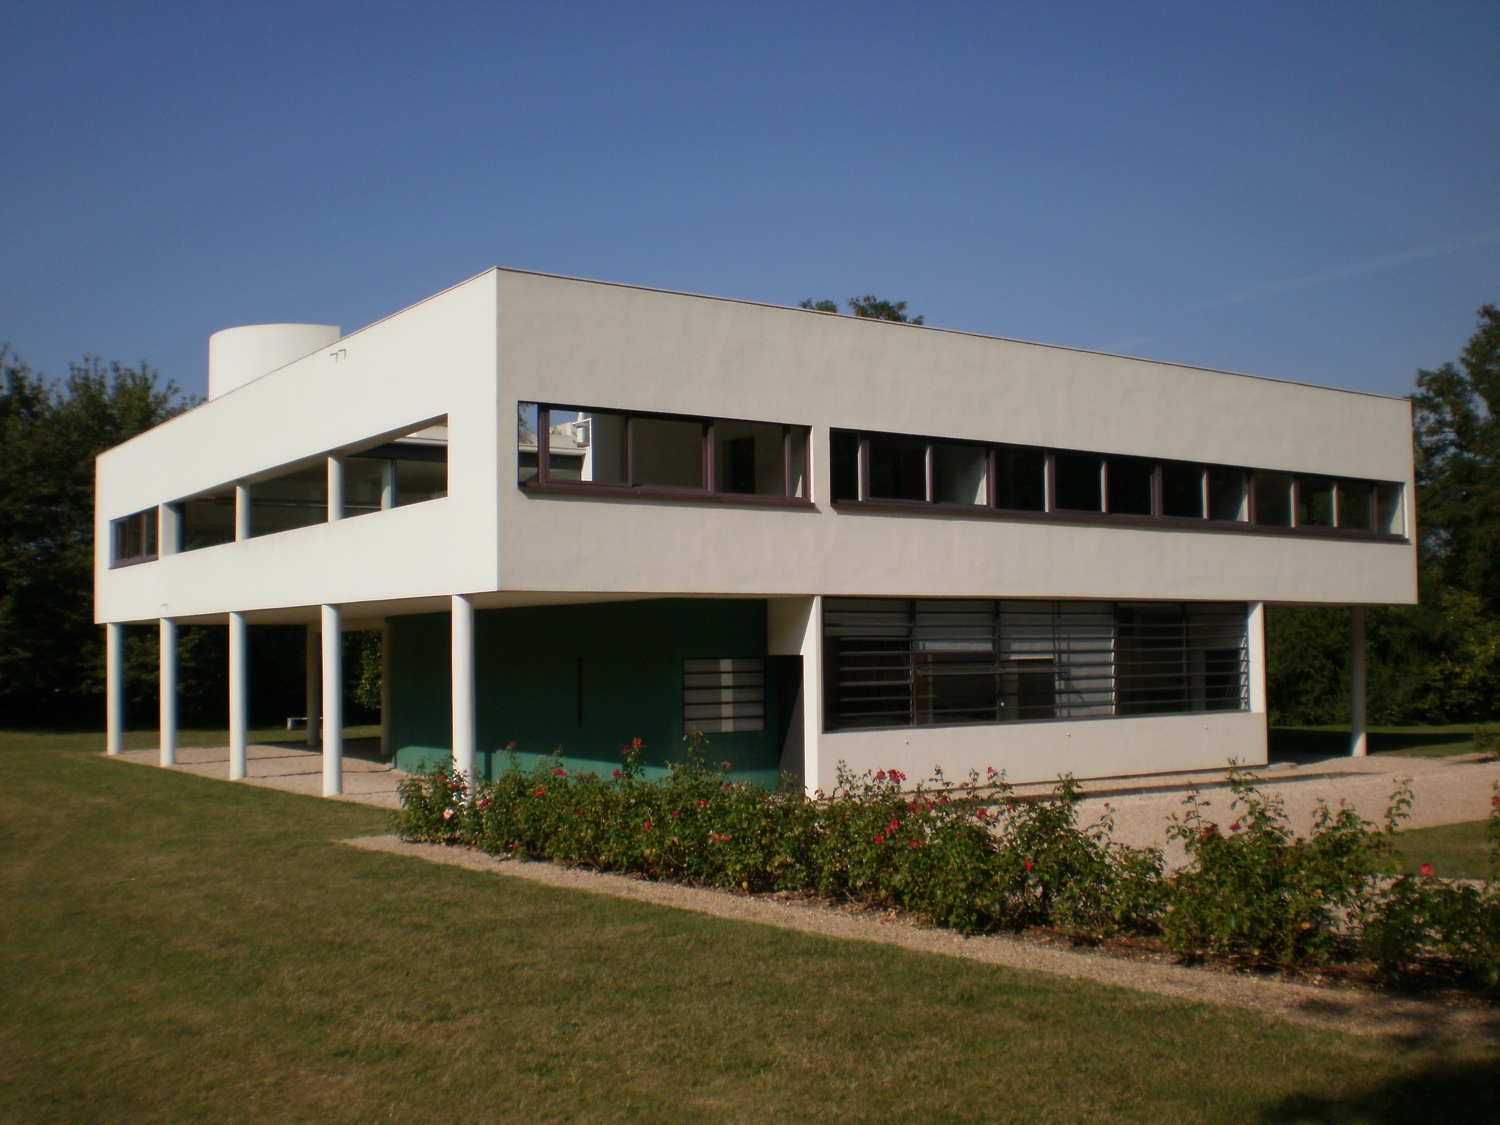 17 le corbusier buildings added to unesco world heritage list for Le corbusier villa savoye